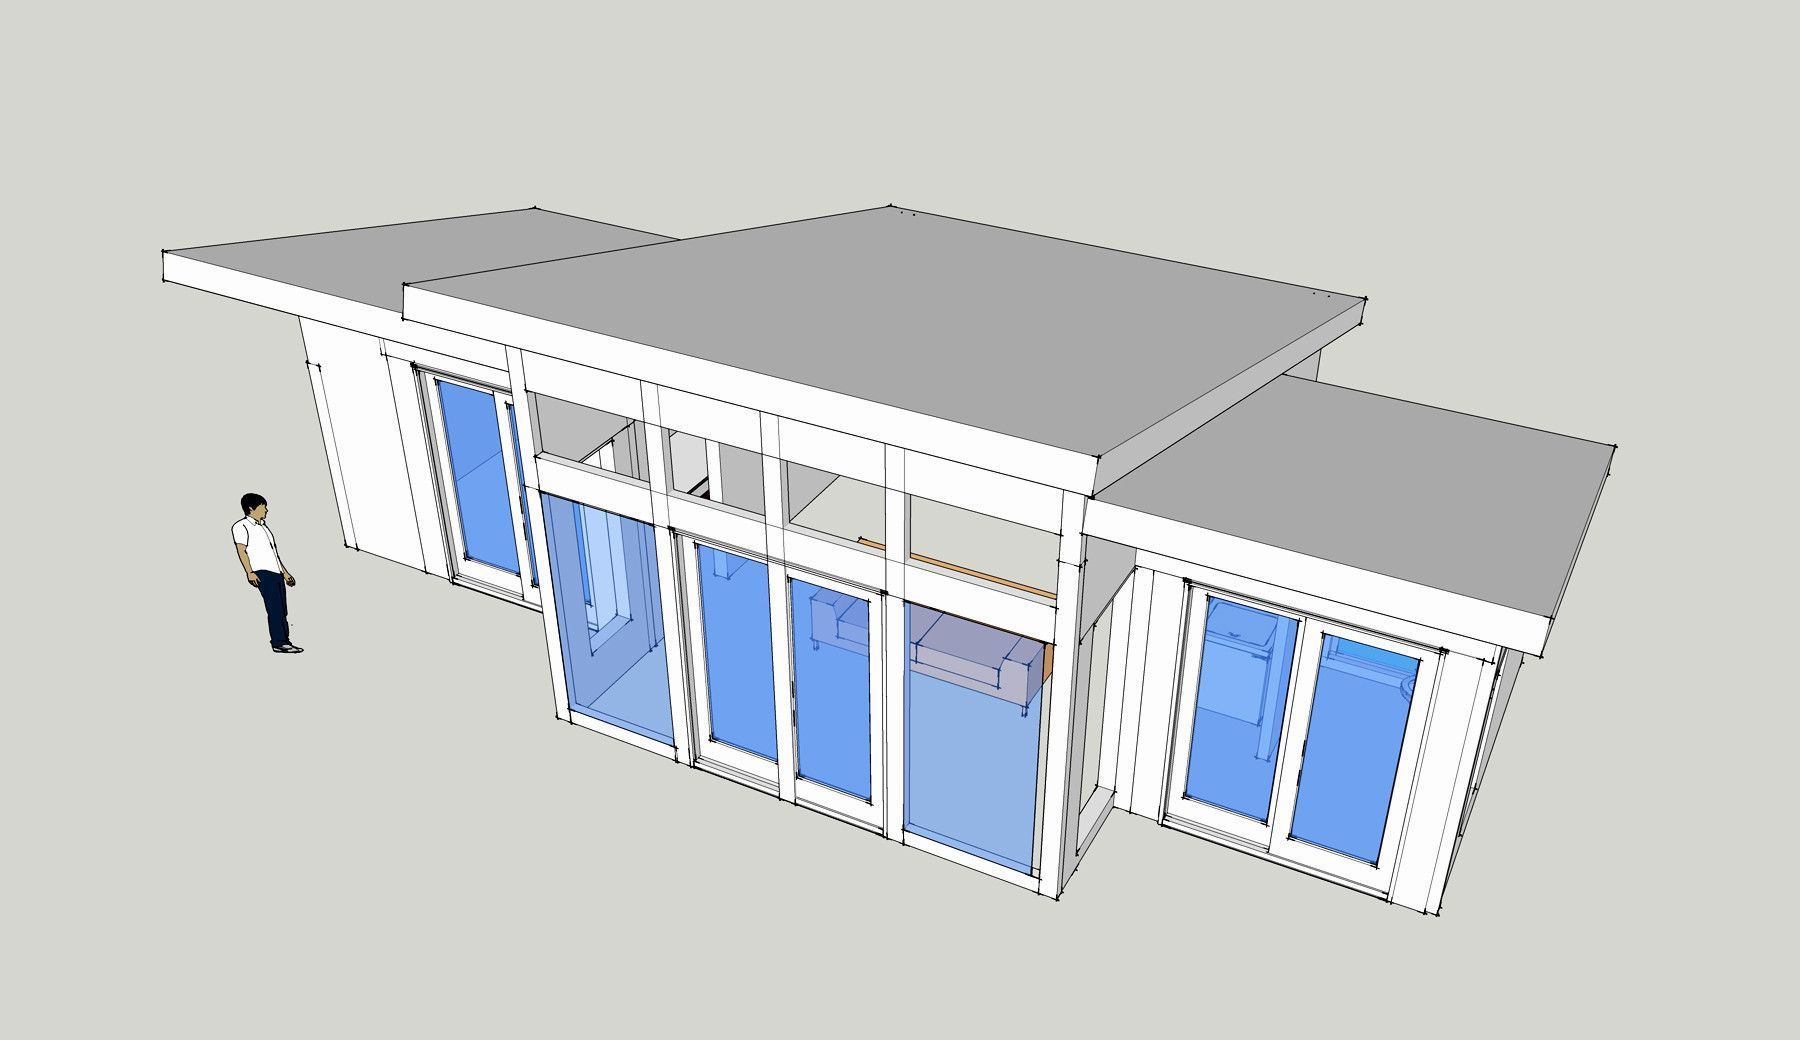 6 Clear Simple Ideas Roofing Terrace Minimal Modern Roofing Materials Garage Roofing Window Roofing Terrace Flooring House Roof Modern House Plans Roof Design